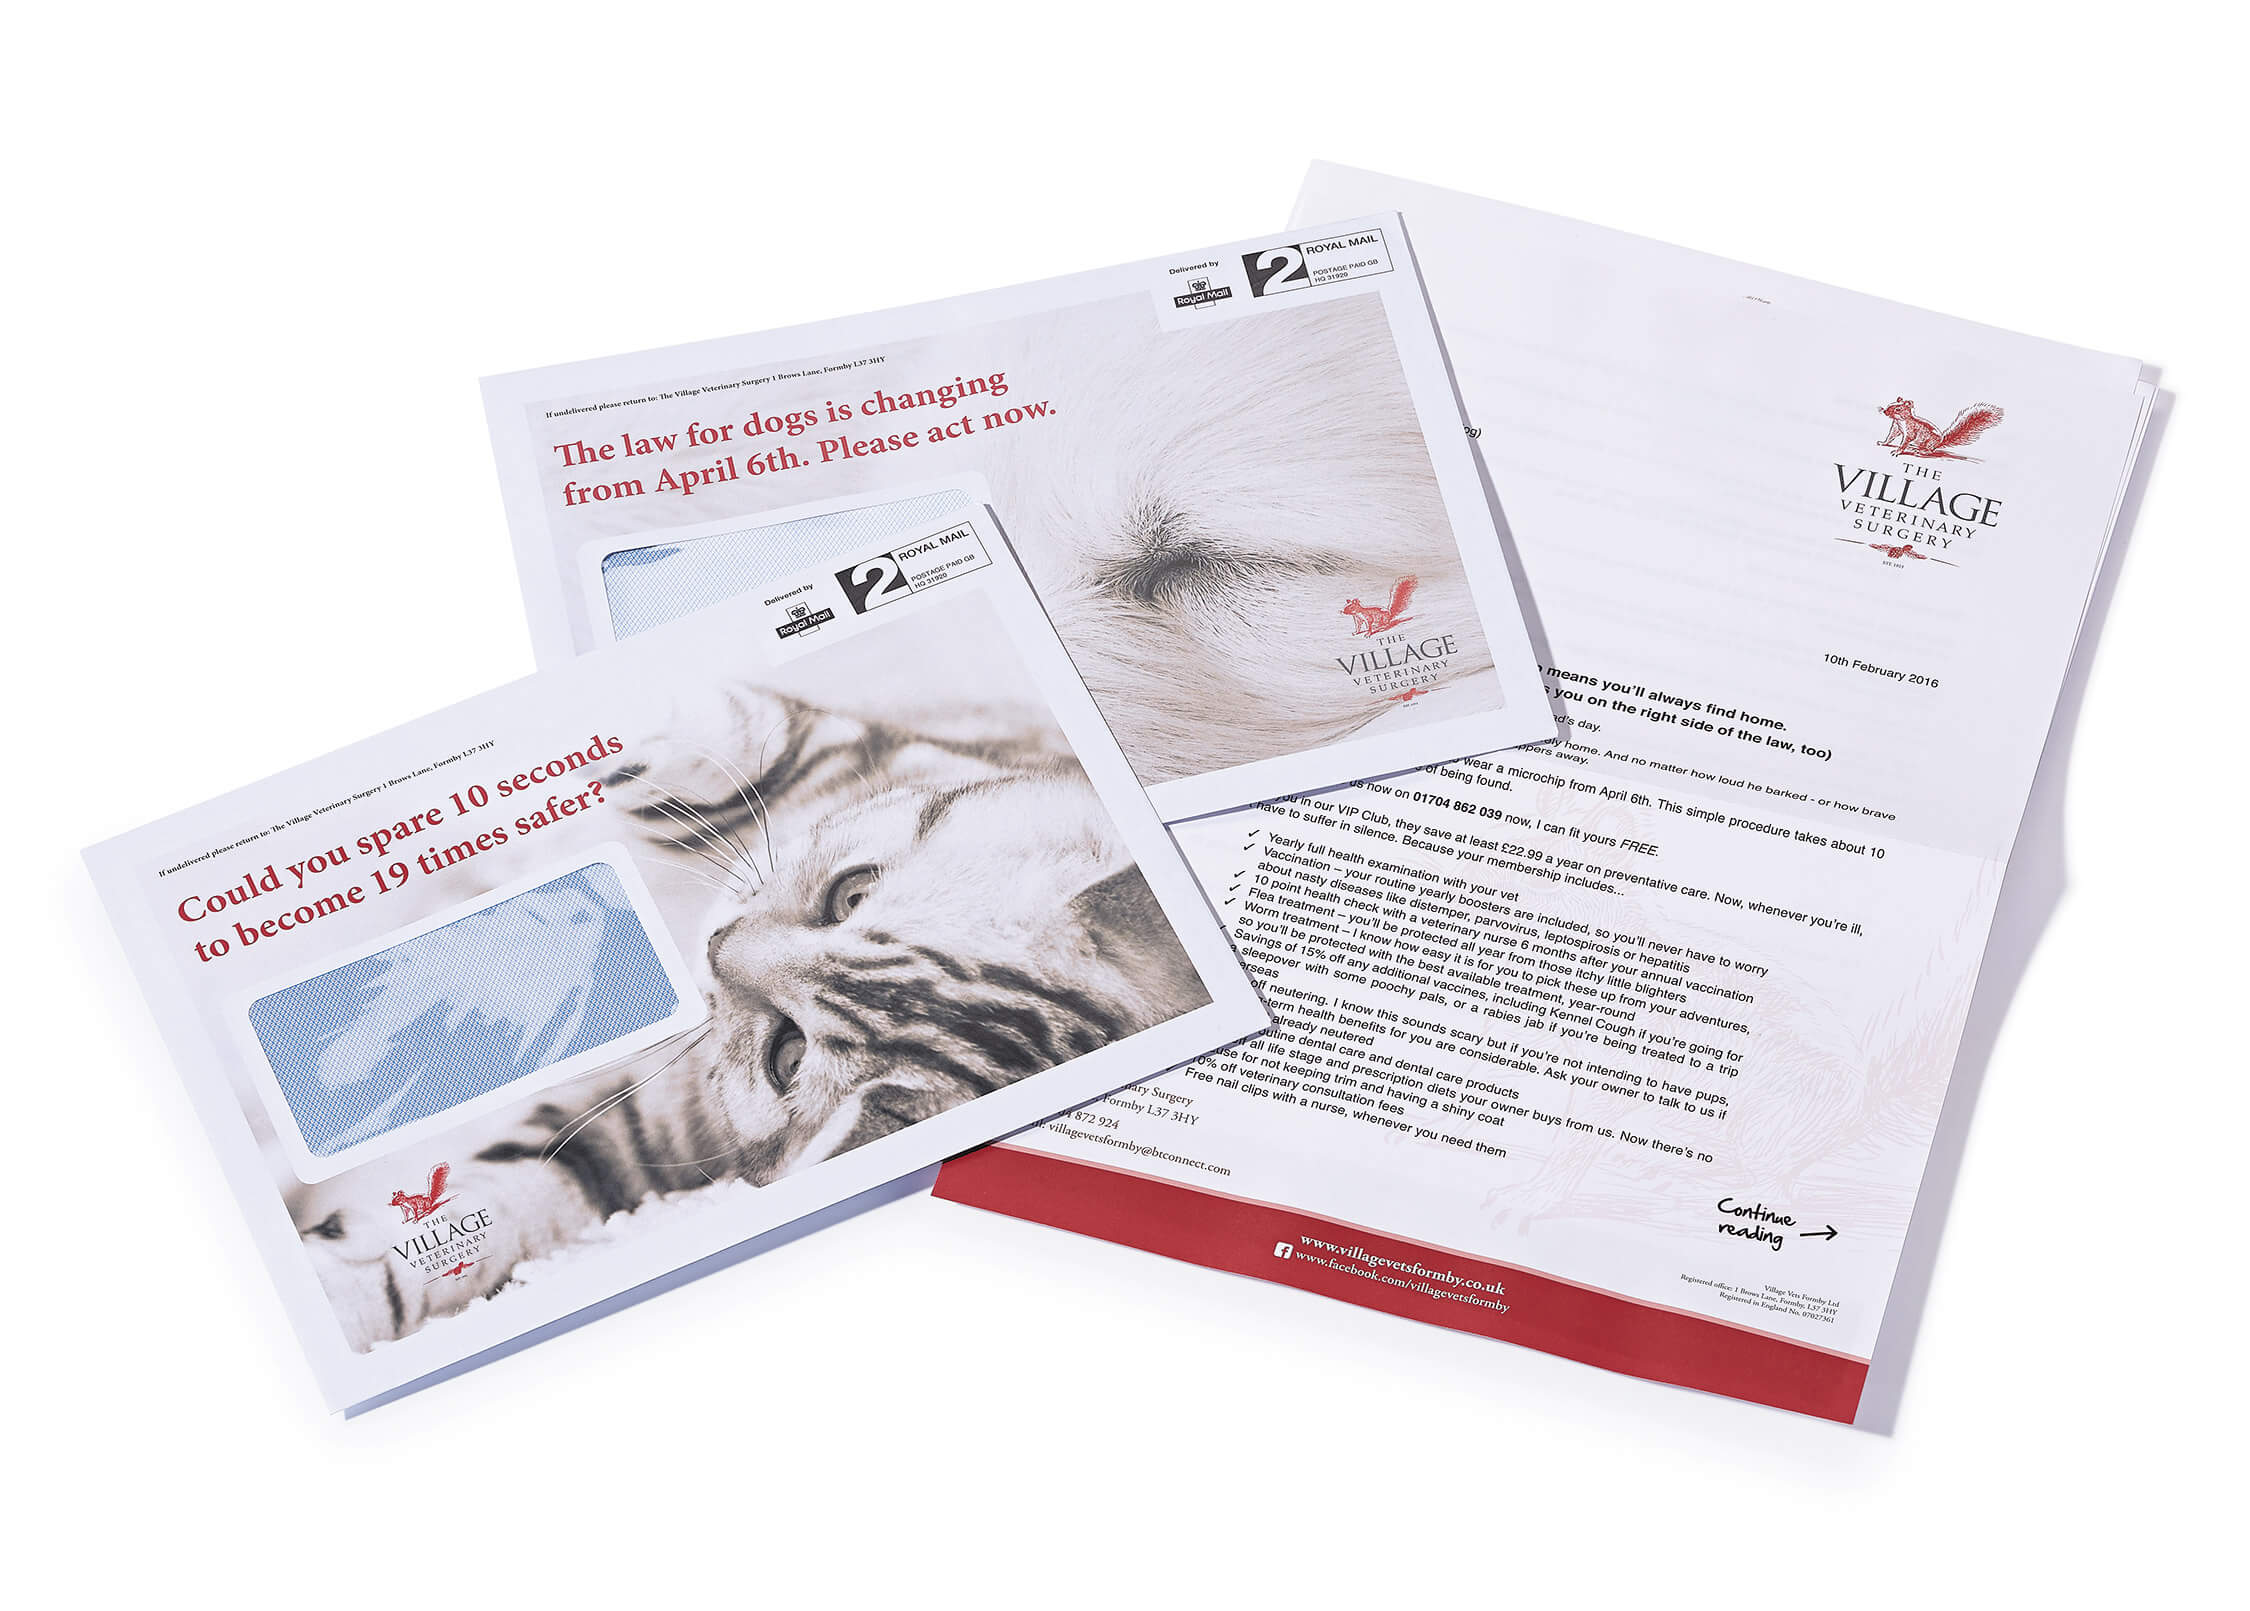 Direct mail marketing for veterinary practice